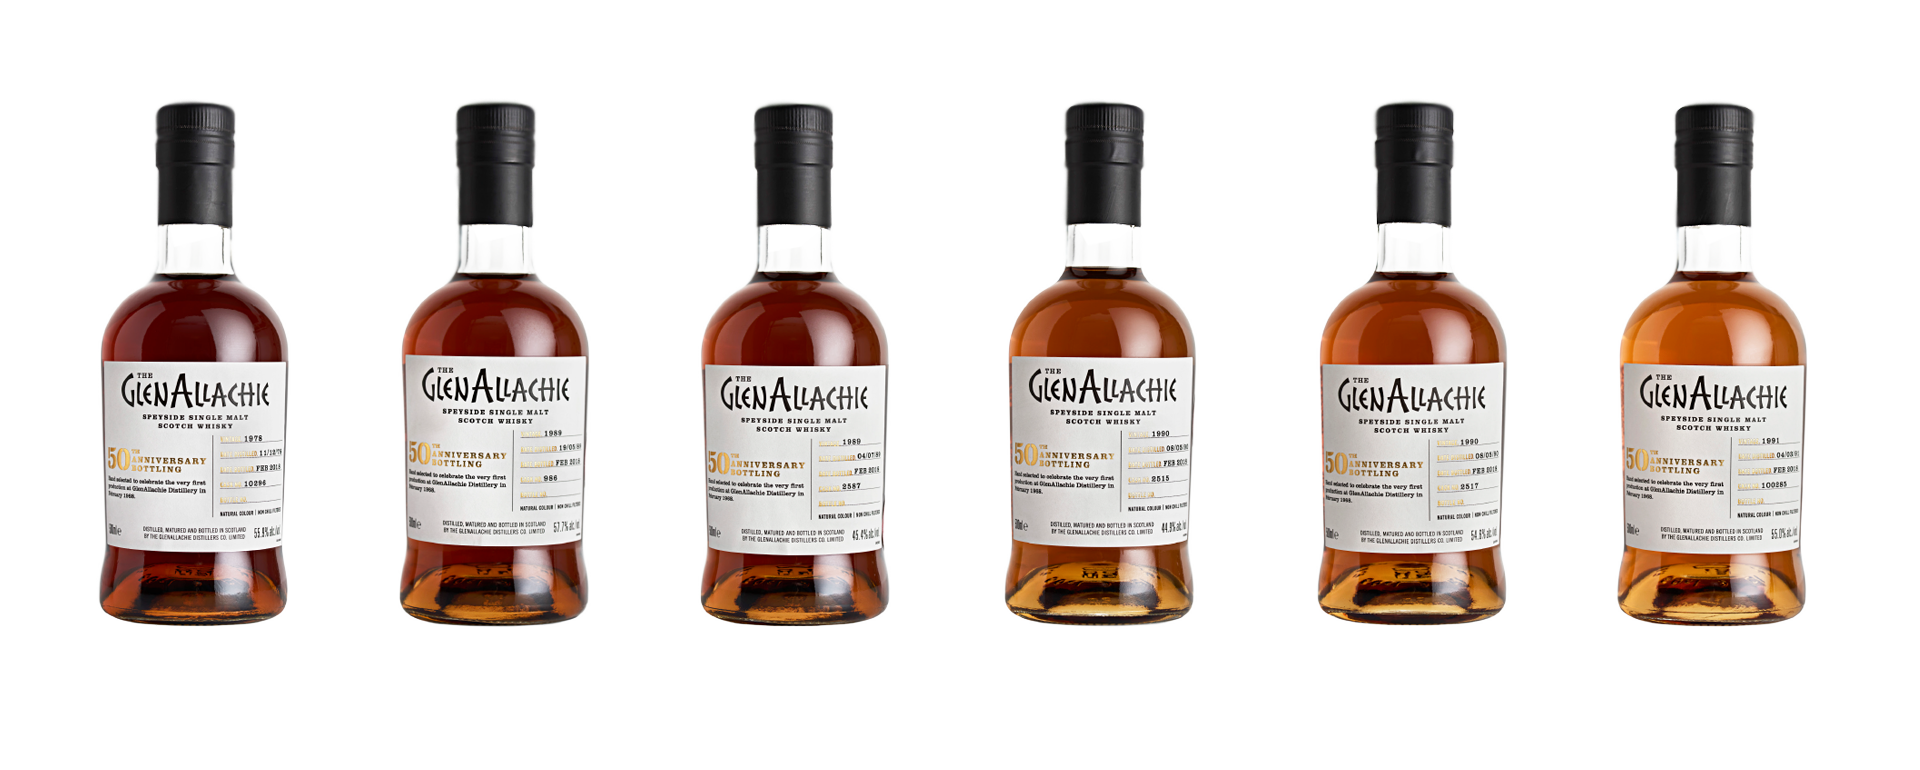 GlenAllachie - Single Malt Scotch Whisky aus der Speyside